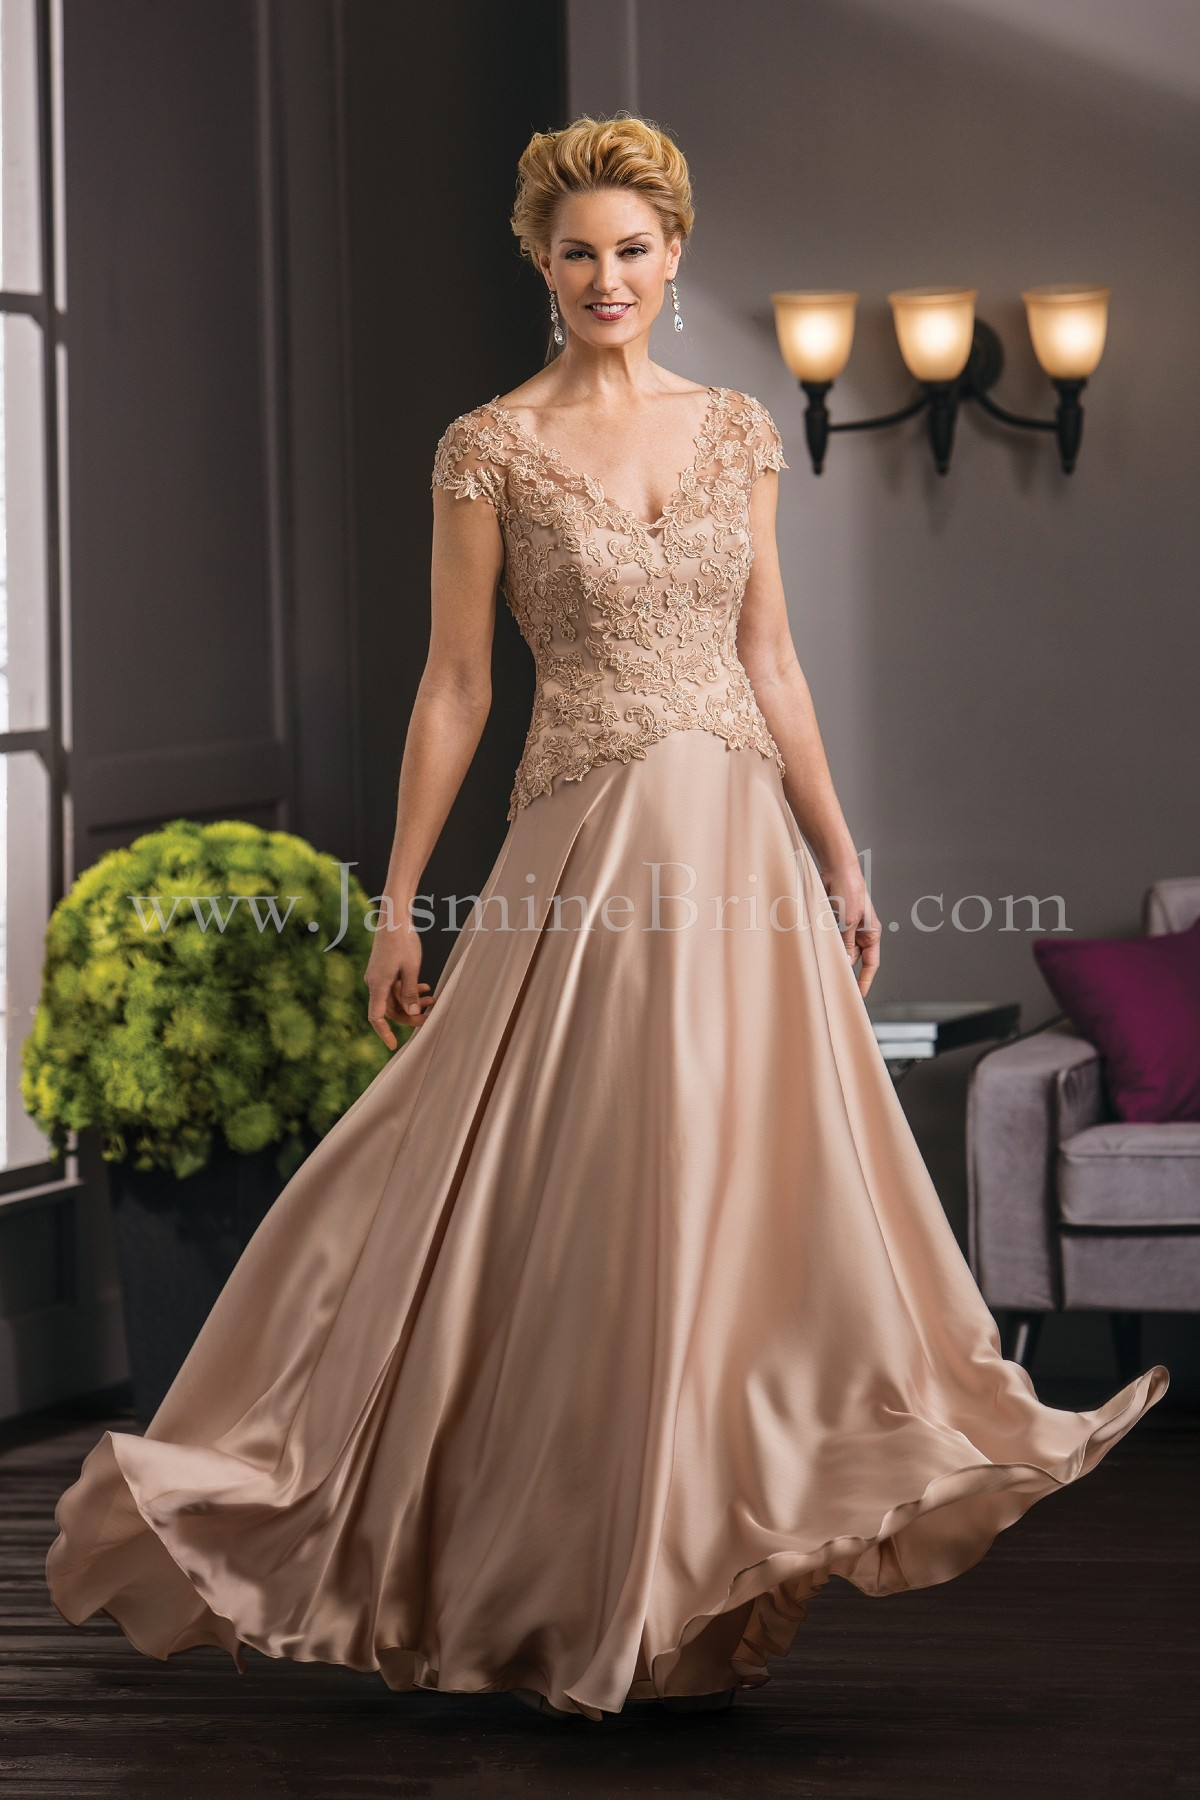 mother-of-the-bride-dresses2